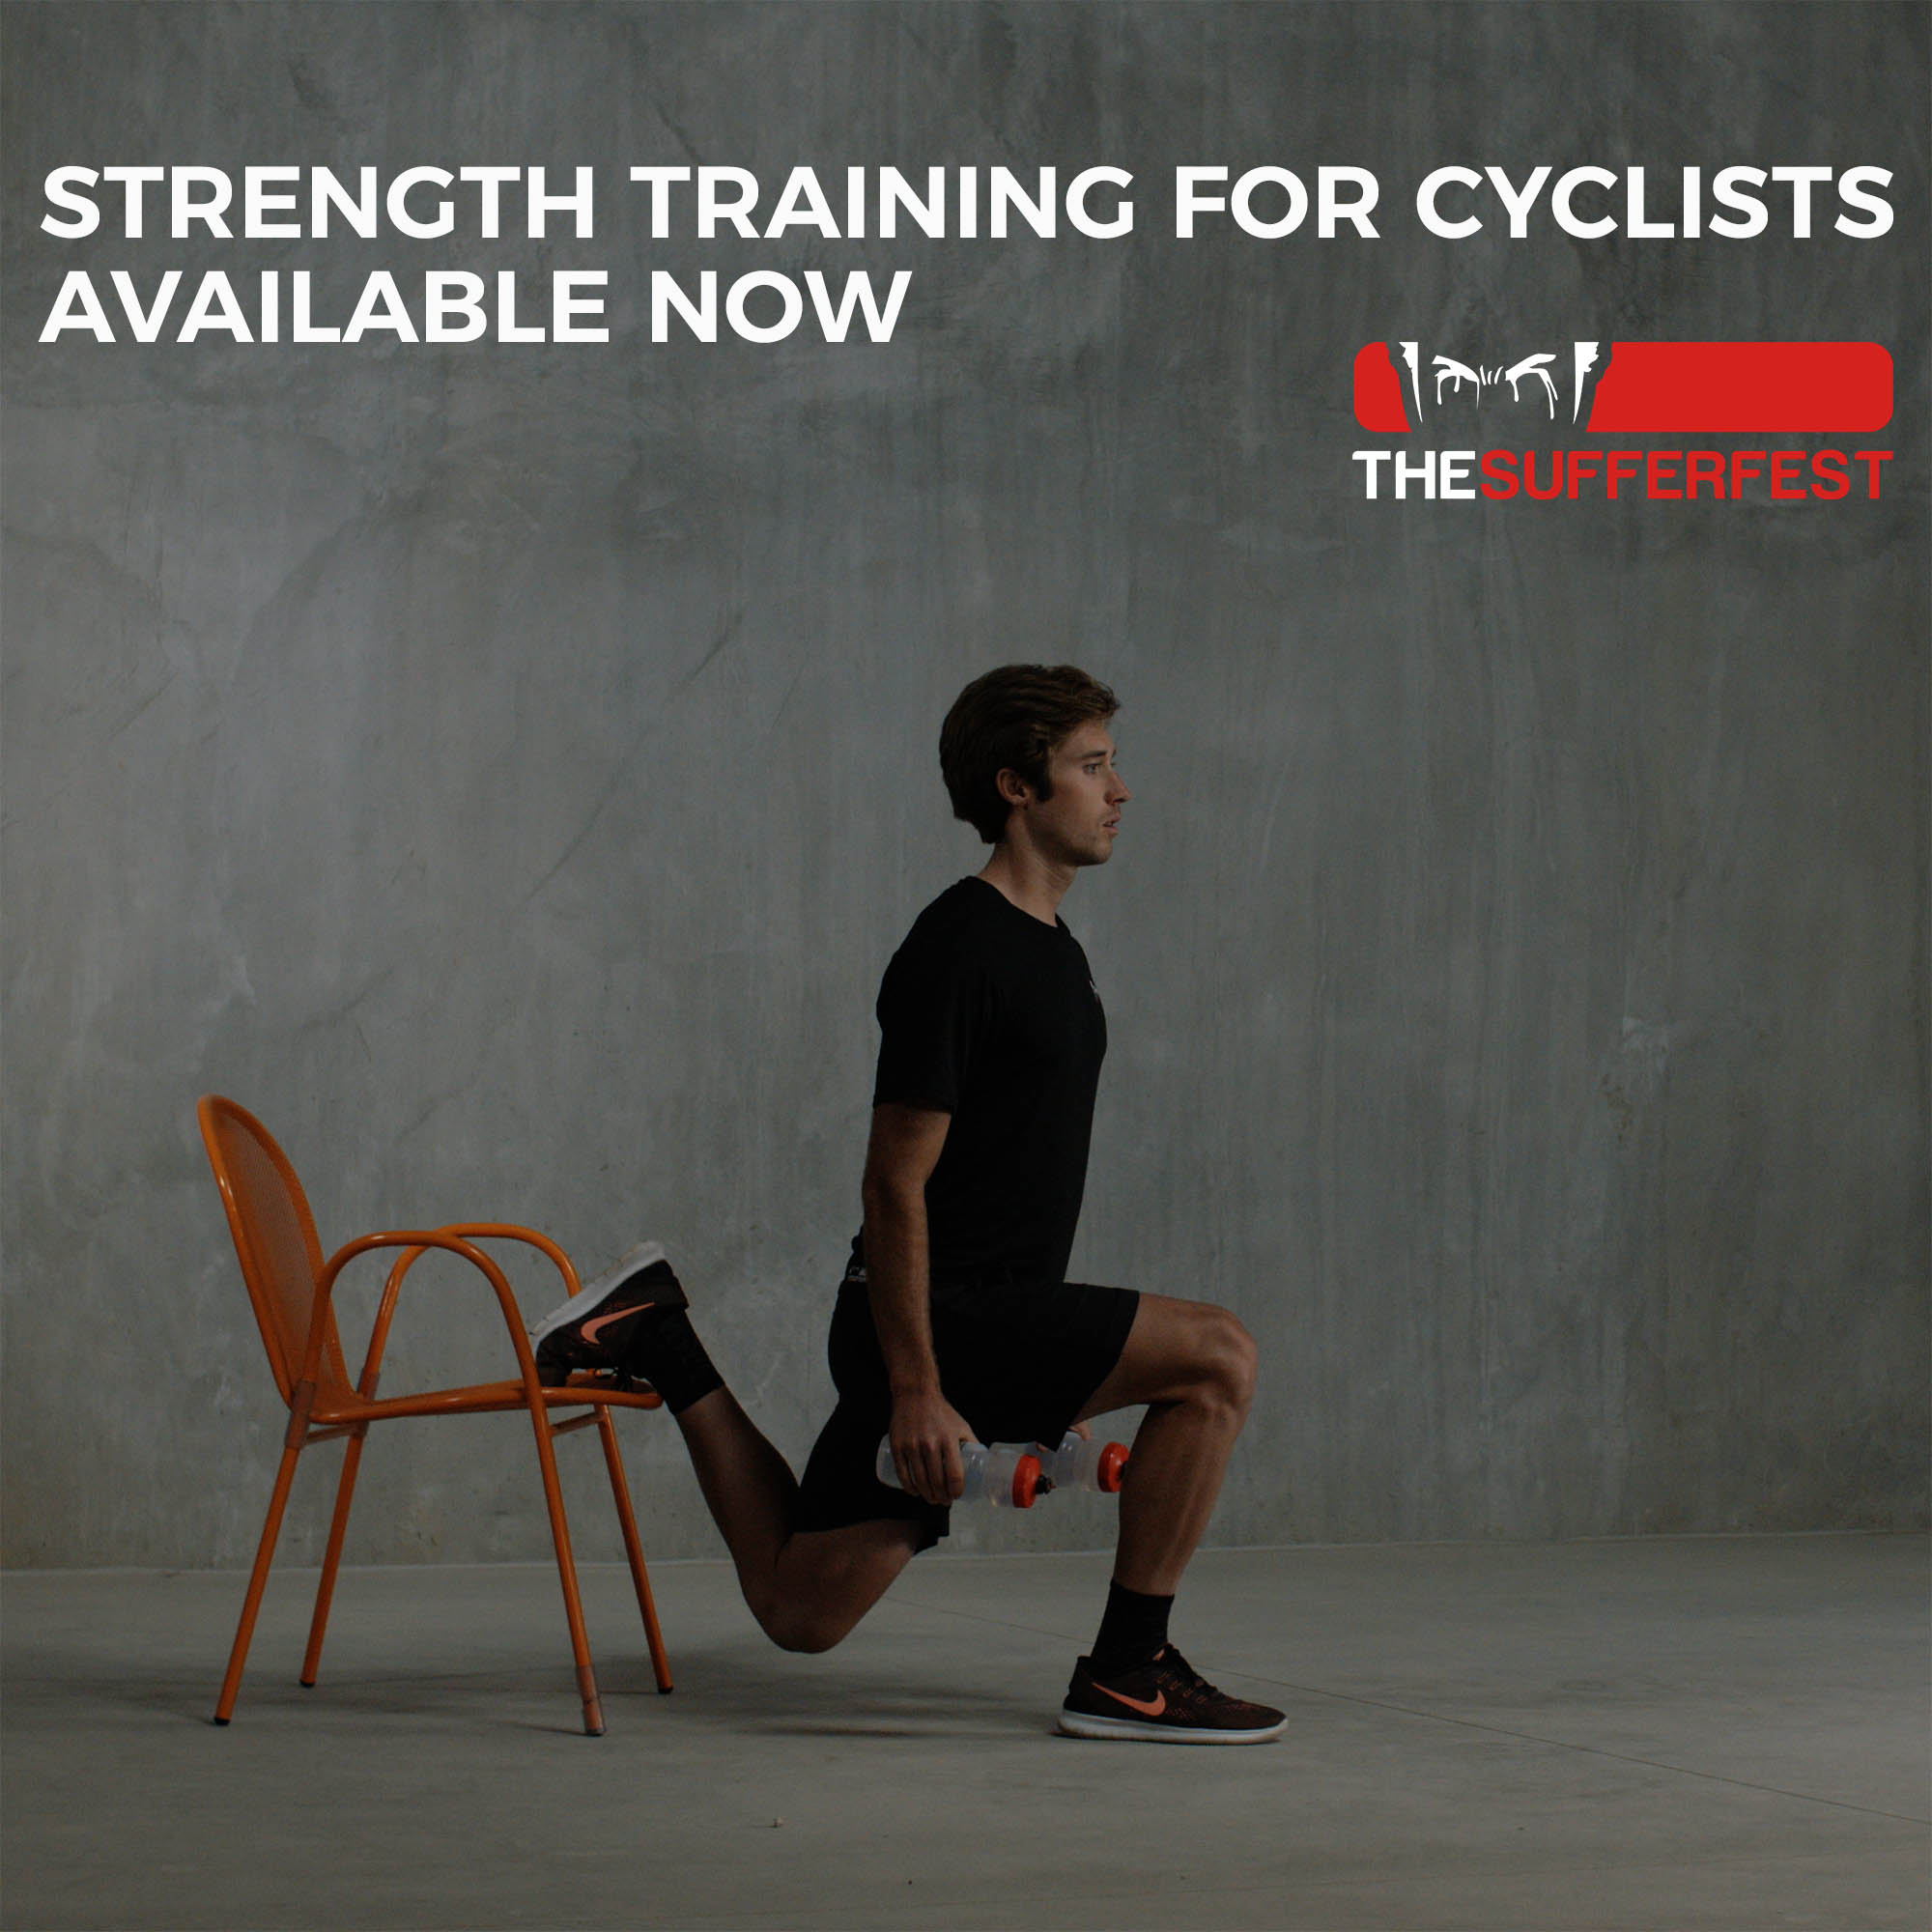 Strength Training For Cycling: The Sufferfest Releases New Strength Training For Cyclists